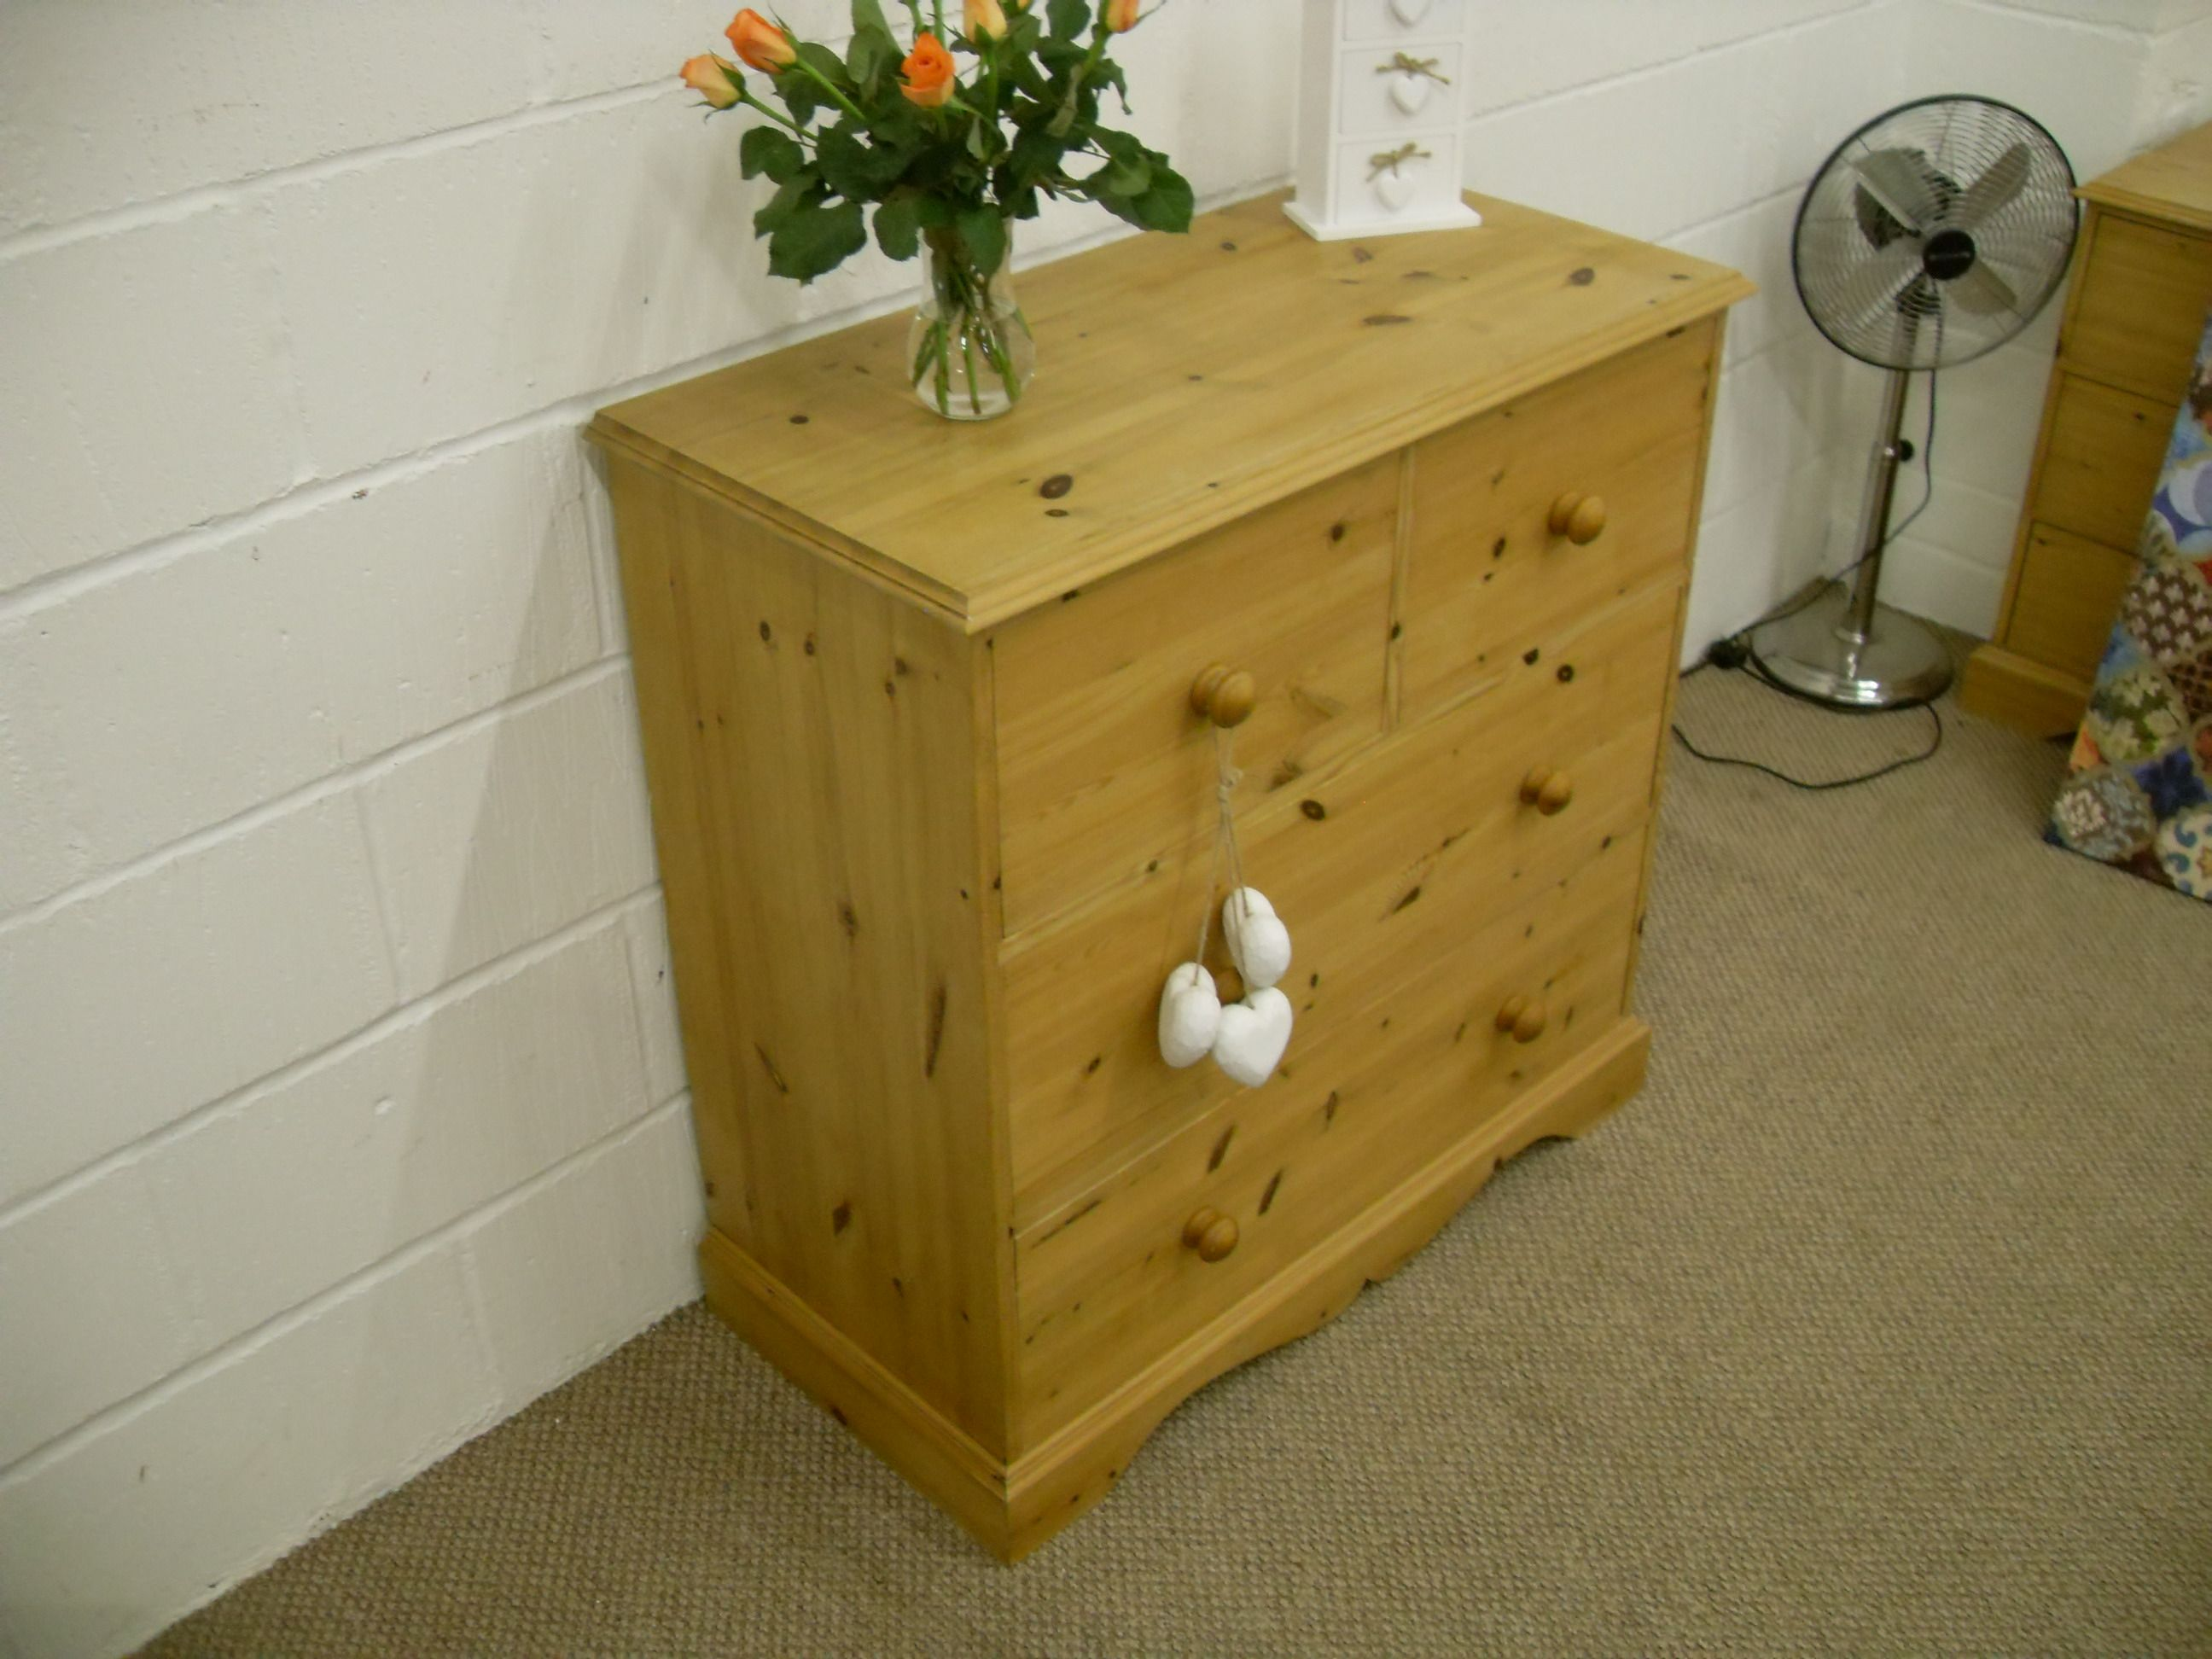 LARGE SOLID PINE CHEST OF DRAWERS QUALITY THROUGHOUT - W 93 - D 46 - H 93 CM - £175 http://www.drabtofabfurniture.co.uk/